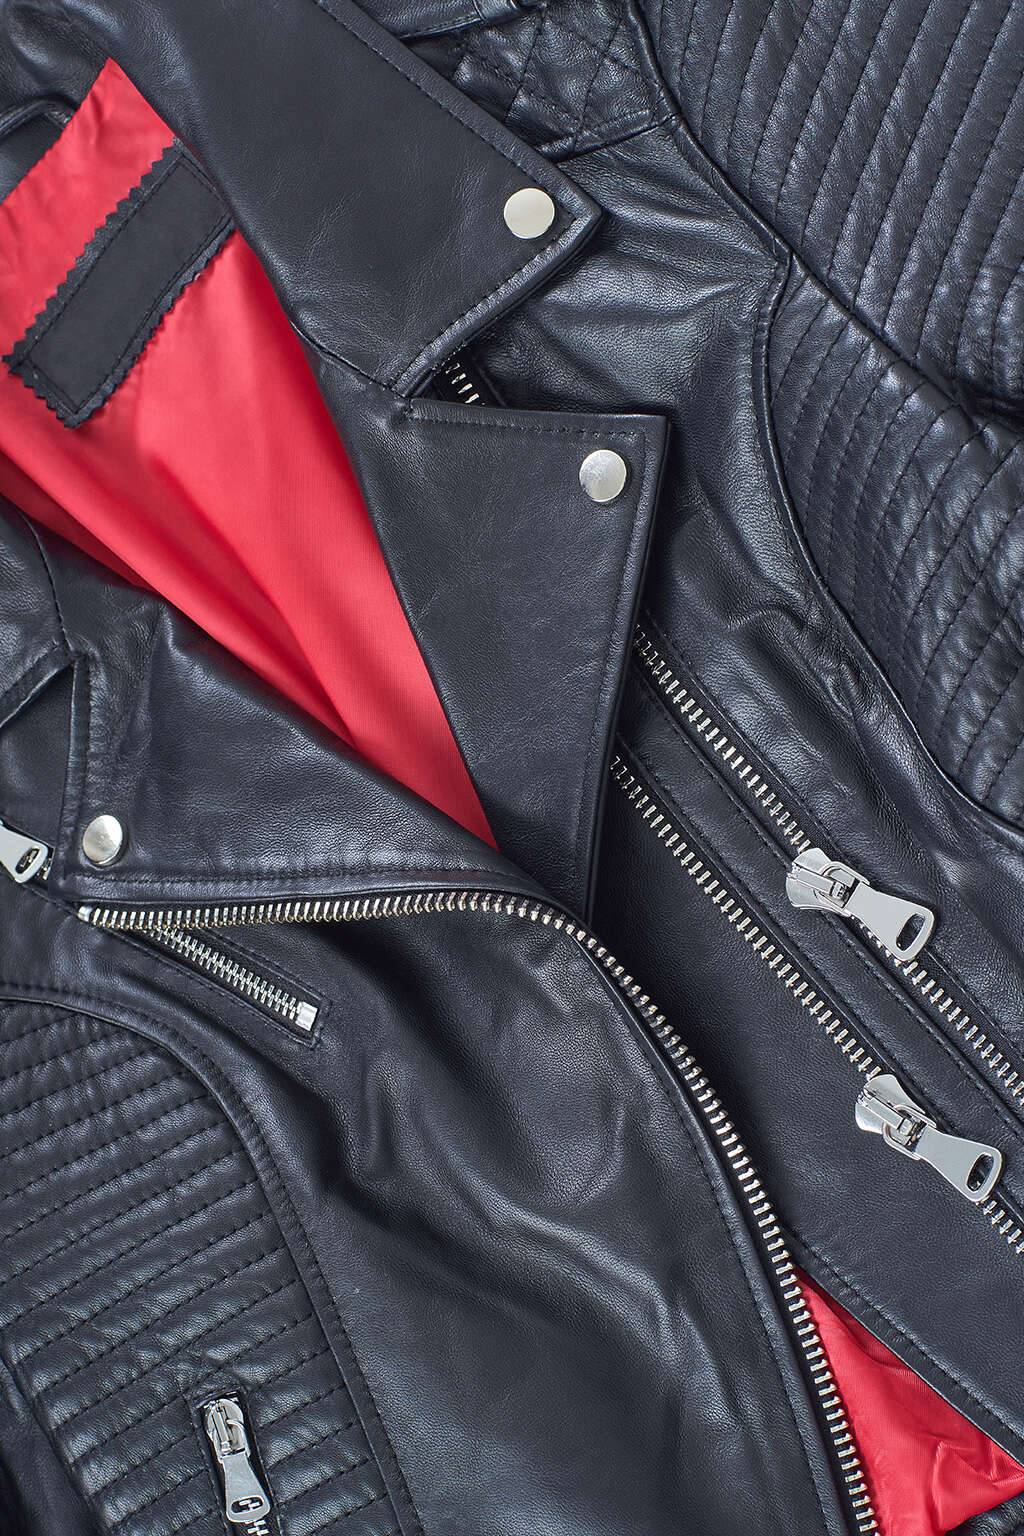 Double Zipper and Collar Detail of Jet Black Ribbed Moto Leather Jacket